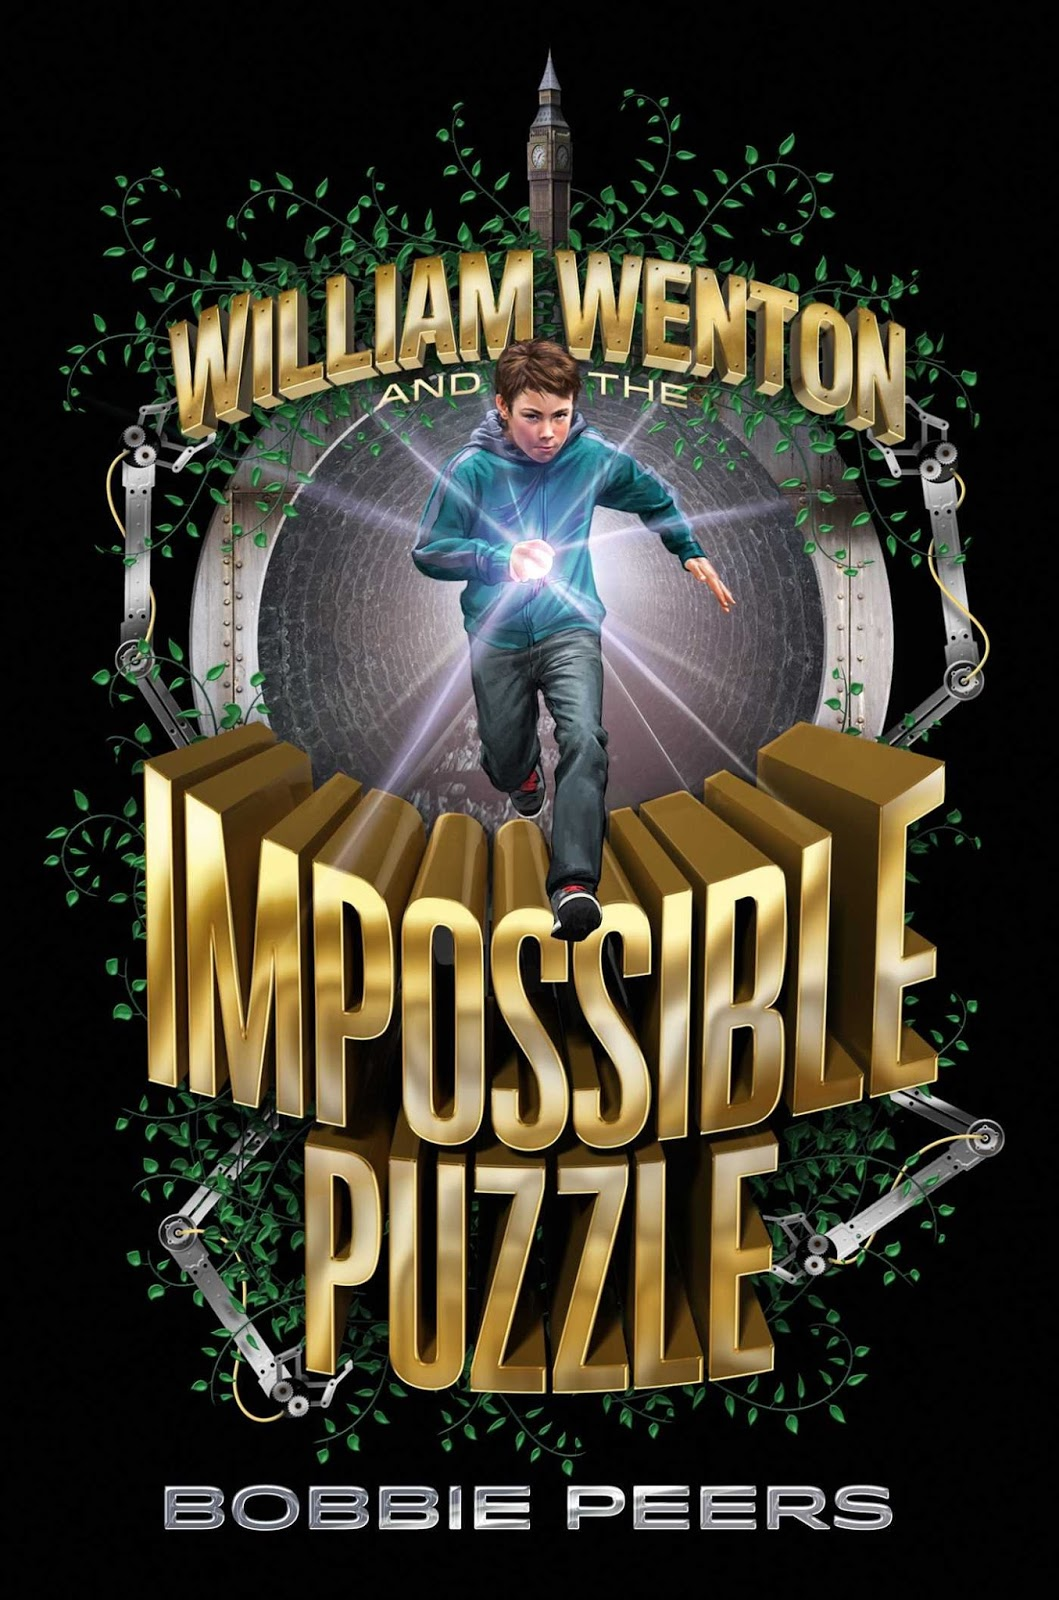 Bobbie Peers  William Wenton And The Impossible Puzzle  Published By  Simon & Schuster Books For Young Readers (23 May 2017)  Isbn13:  9781534404724